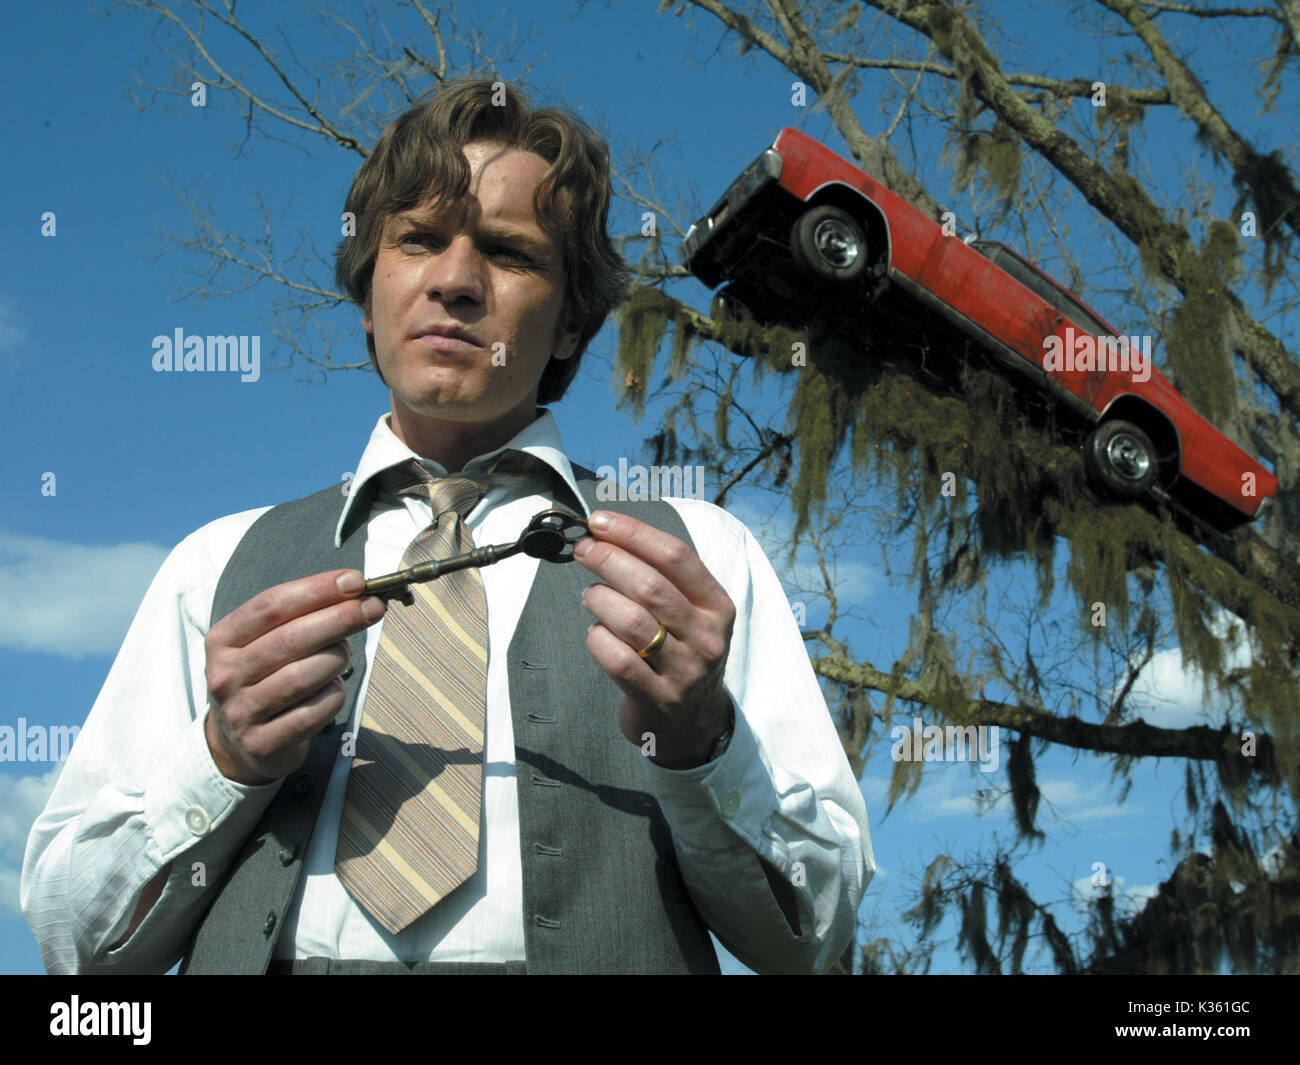 Ewan mcgregor film still stock photos ewan mcgregor film for Ewan mcgregor big fish